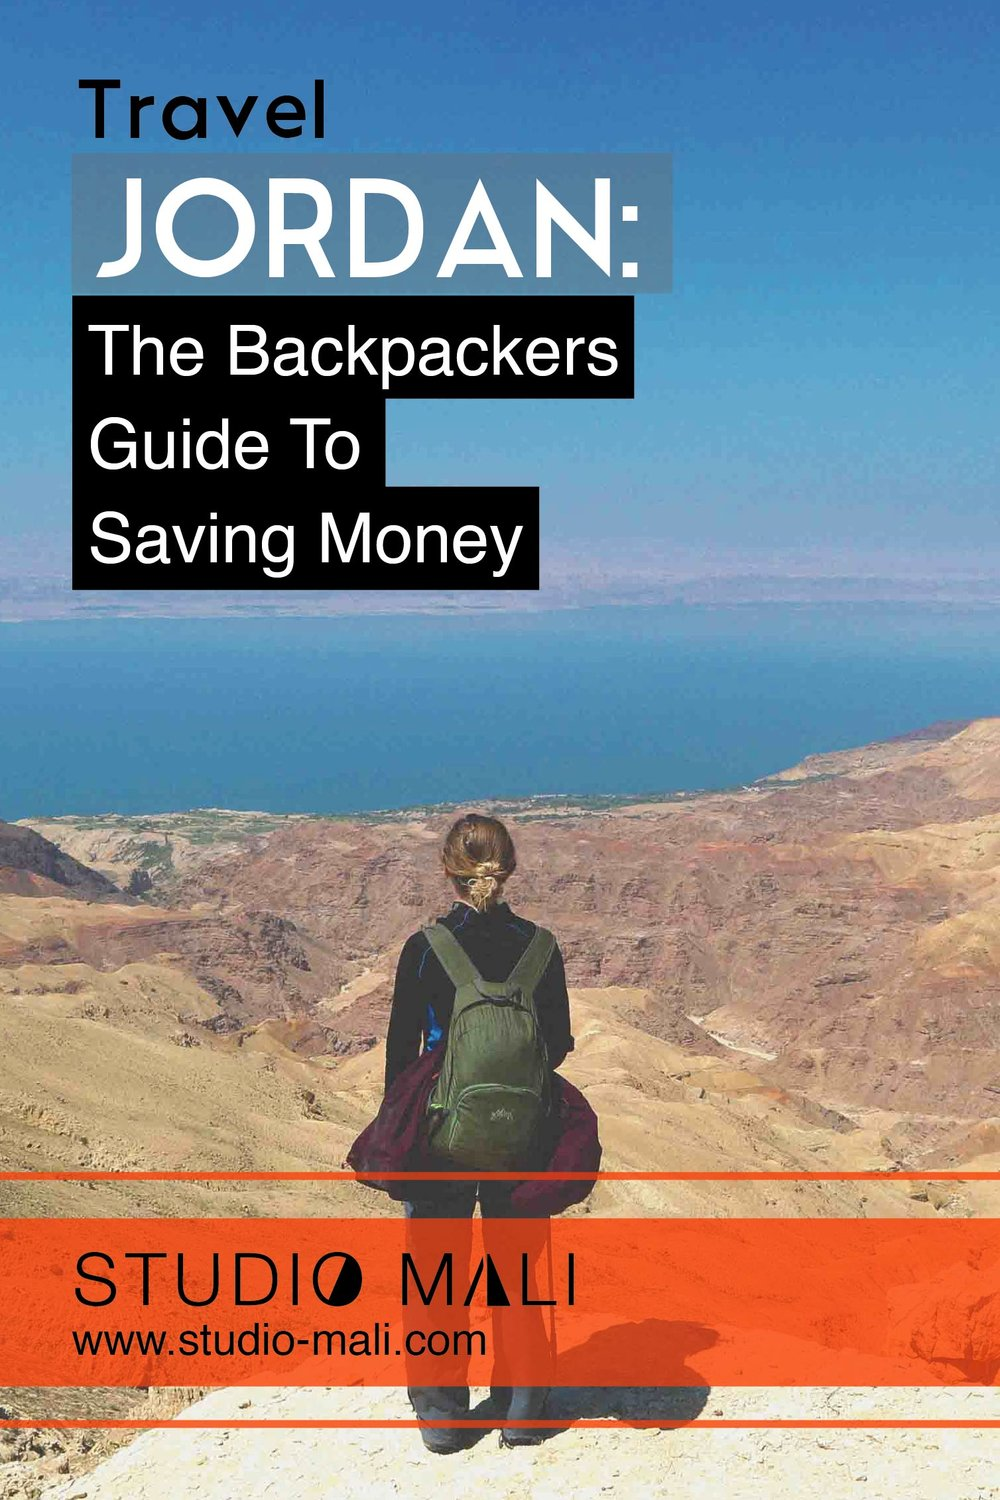 Jordan - The Backpackers Guide To Saving Money, by Studio Mali